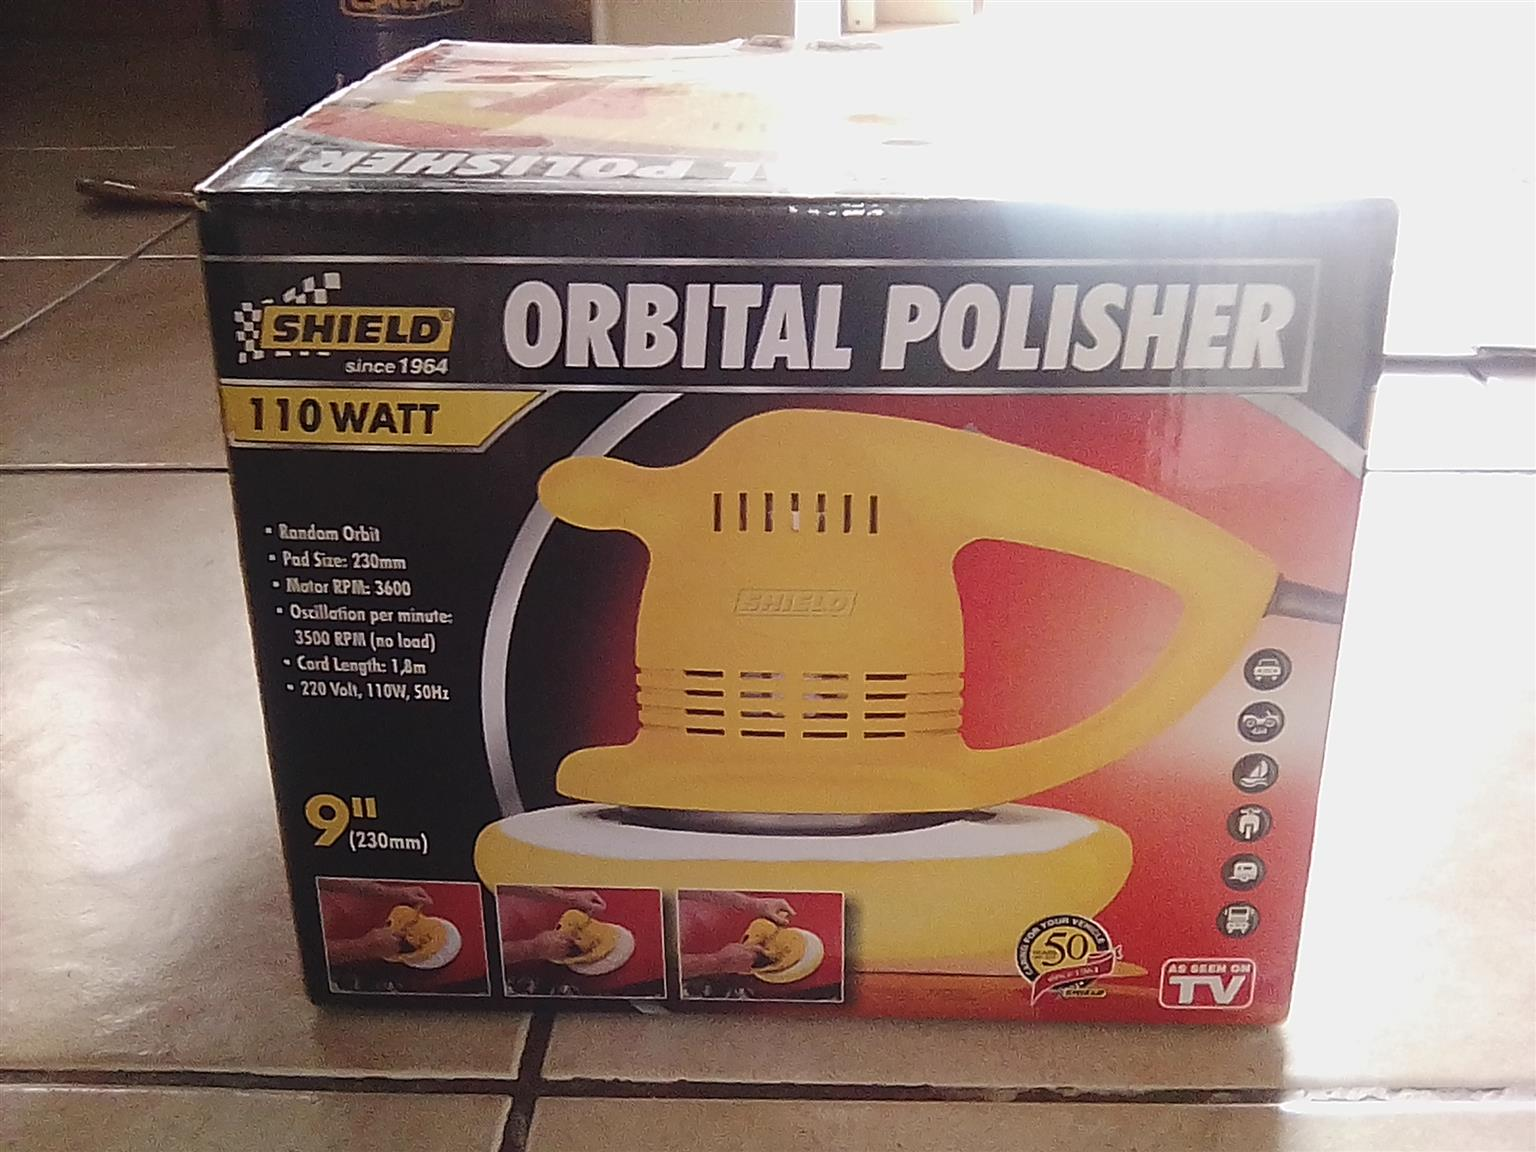 Orbital car polisher and accessories